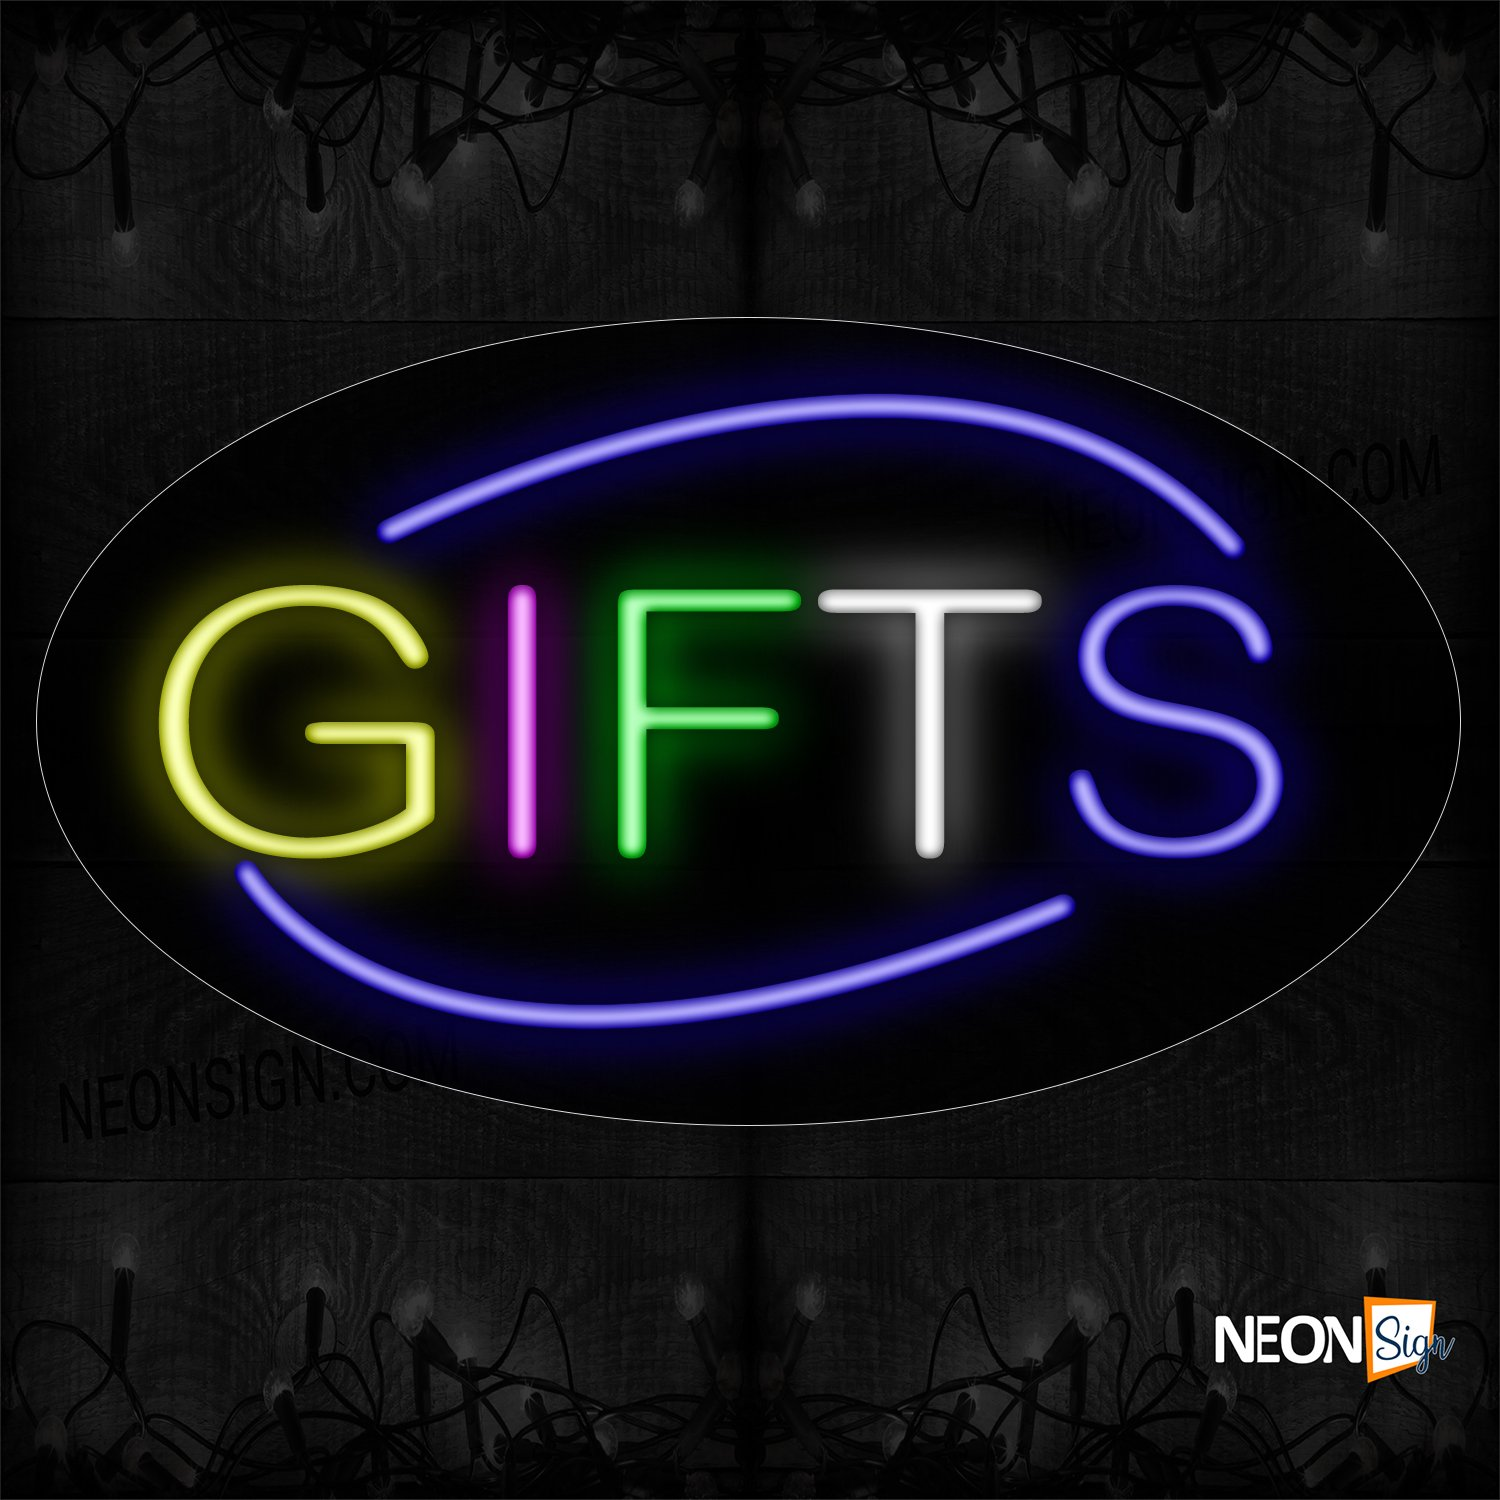 Image of 14045 Colorful Gift With Arc Border Neon Sign_17x30 Contoured Black Backing